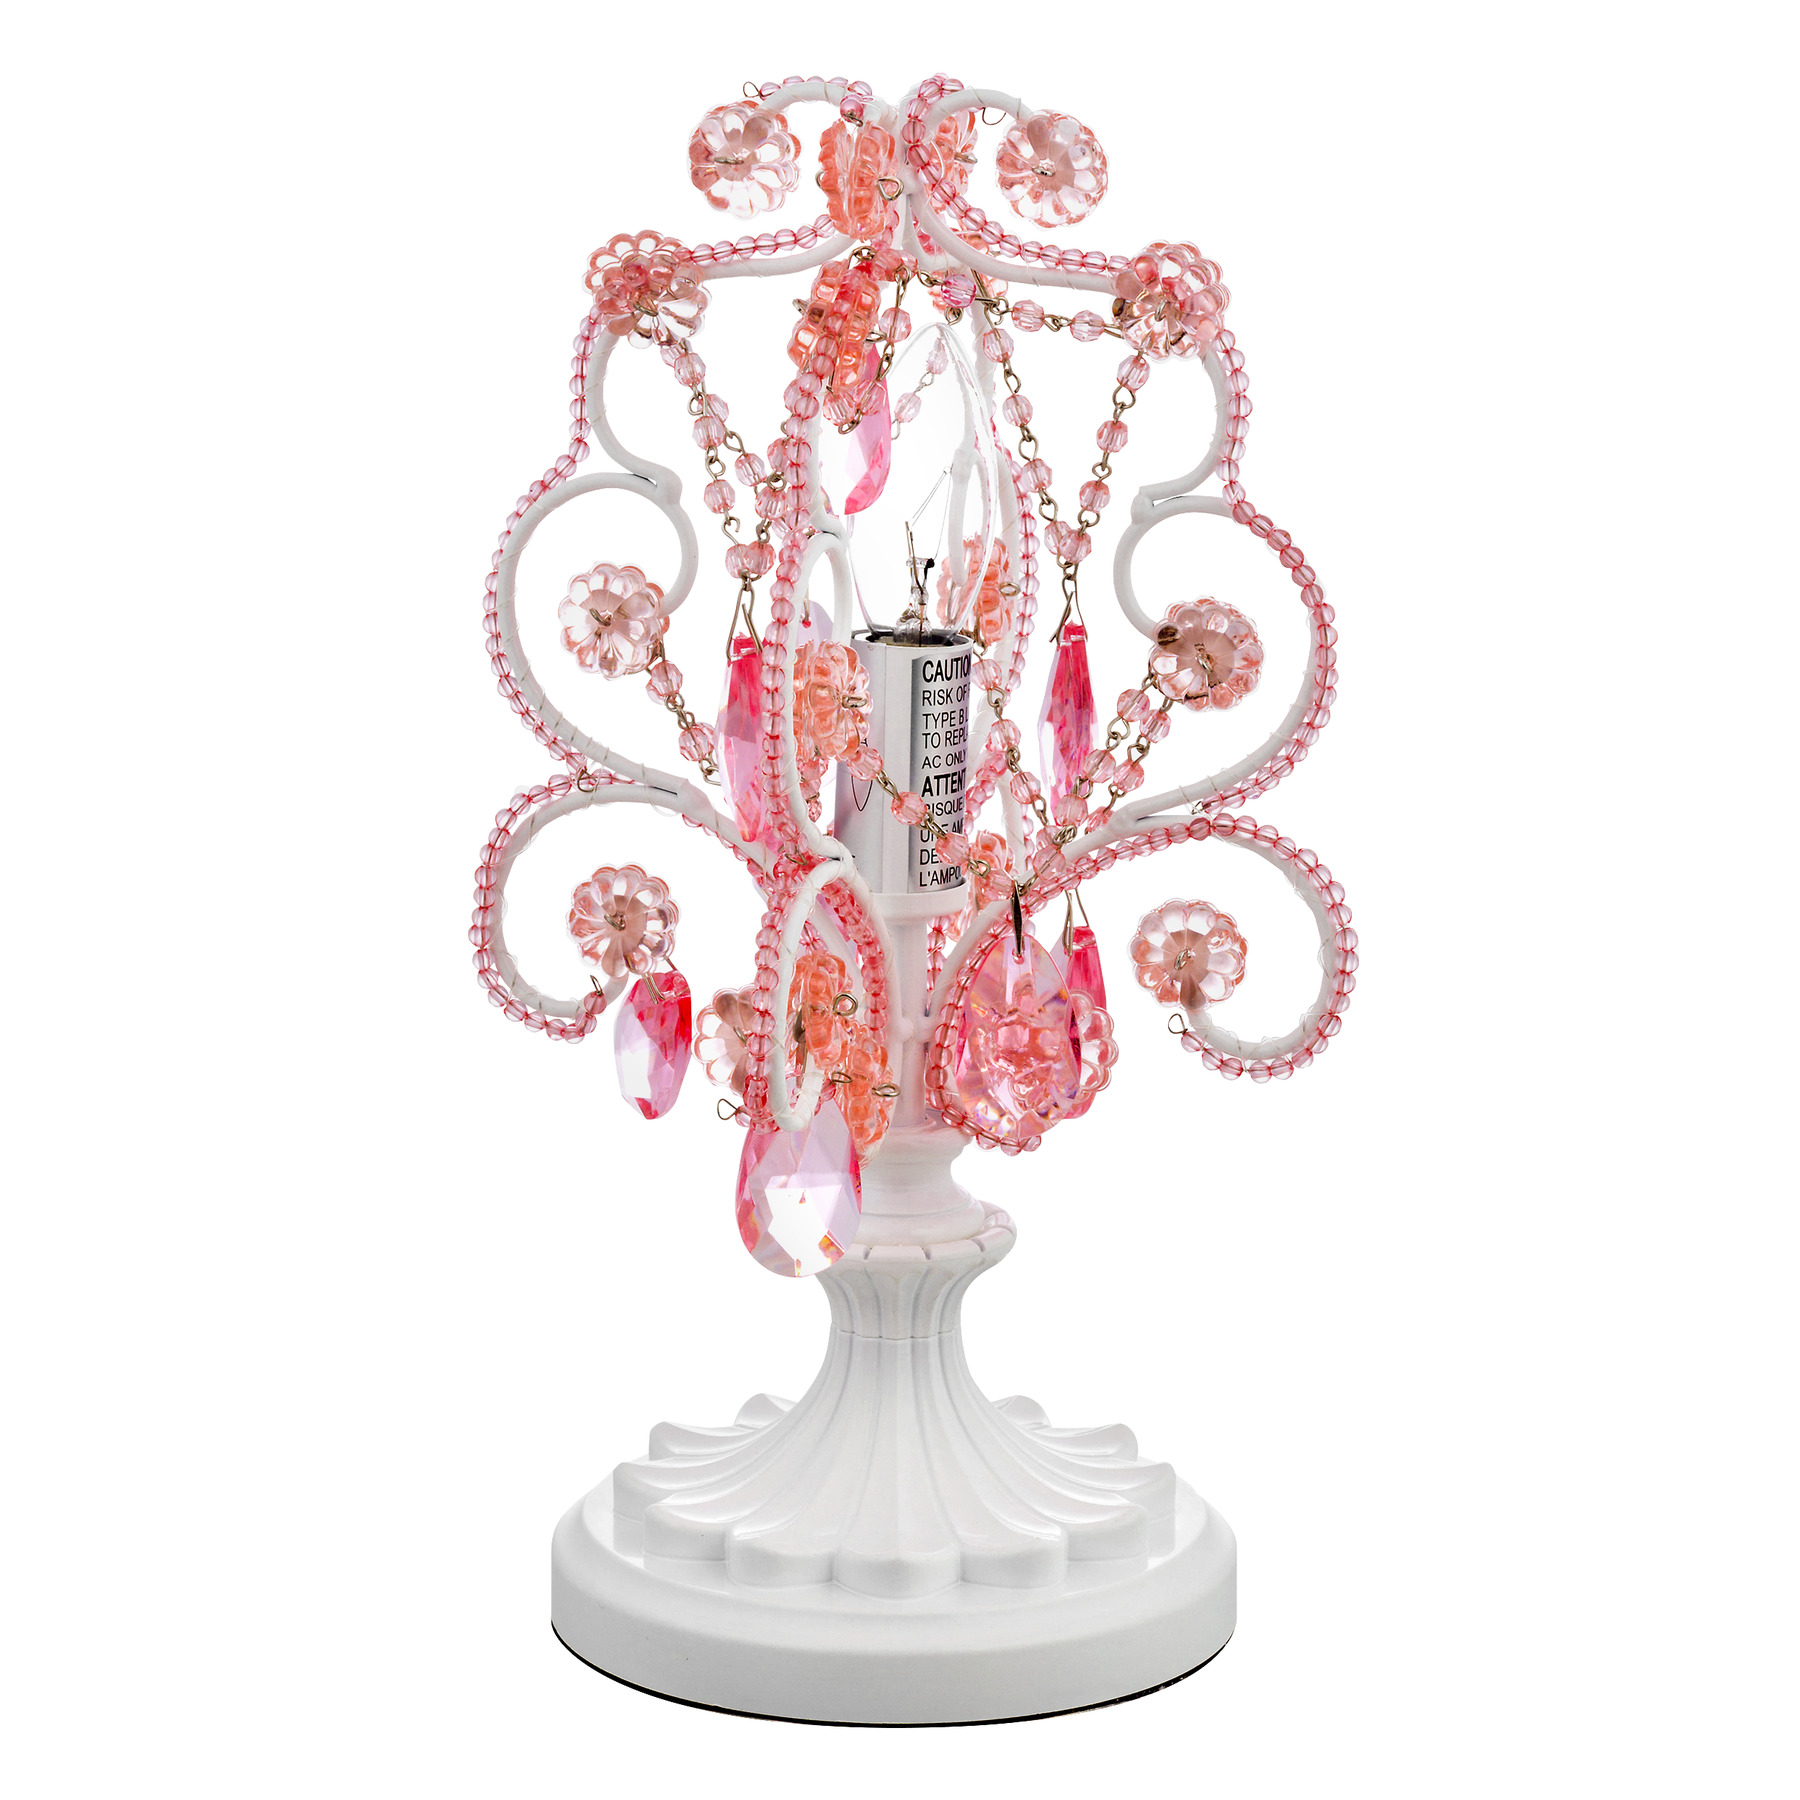 Tadpoles Chandelier Mini Table Lamp Pink, 1.0 CT